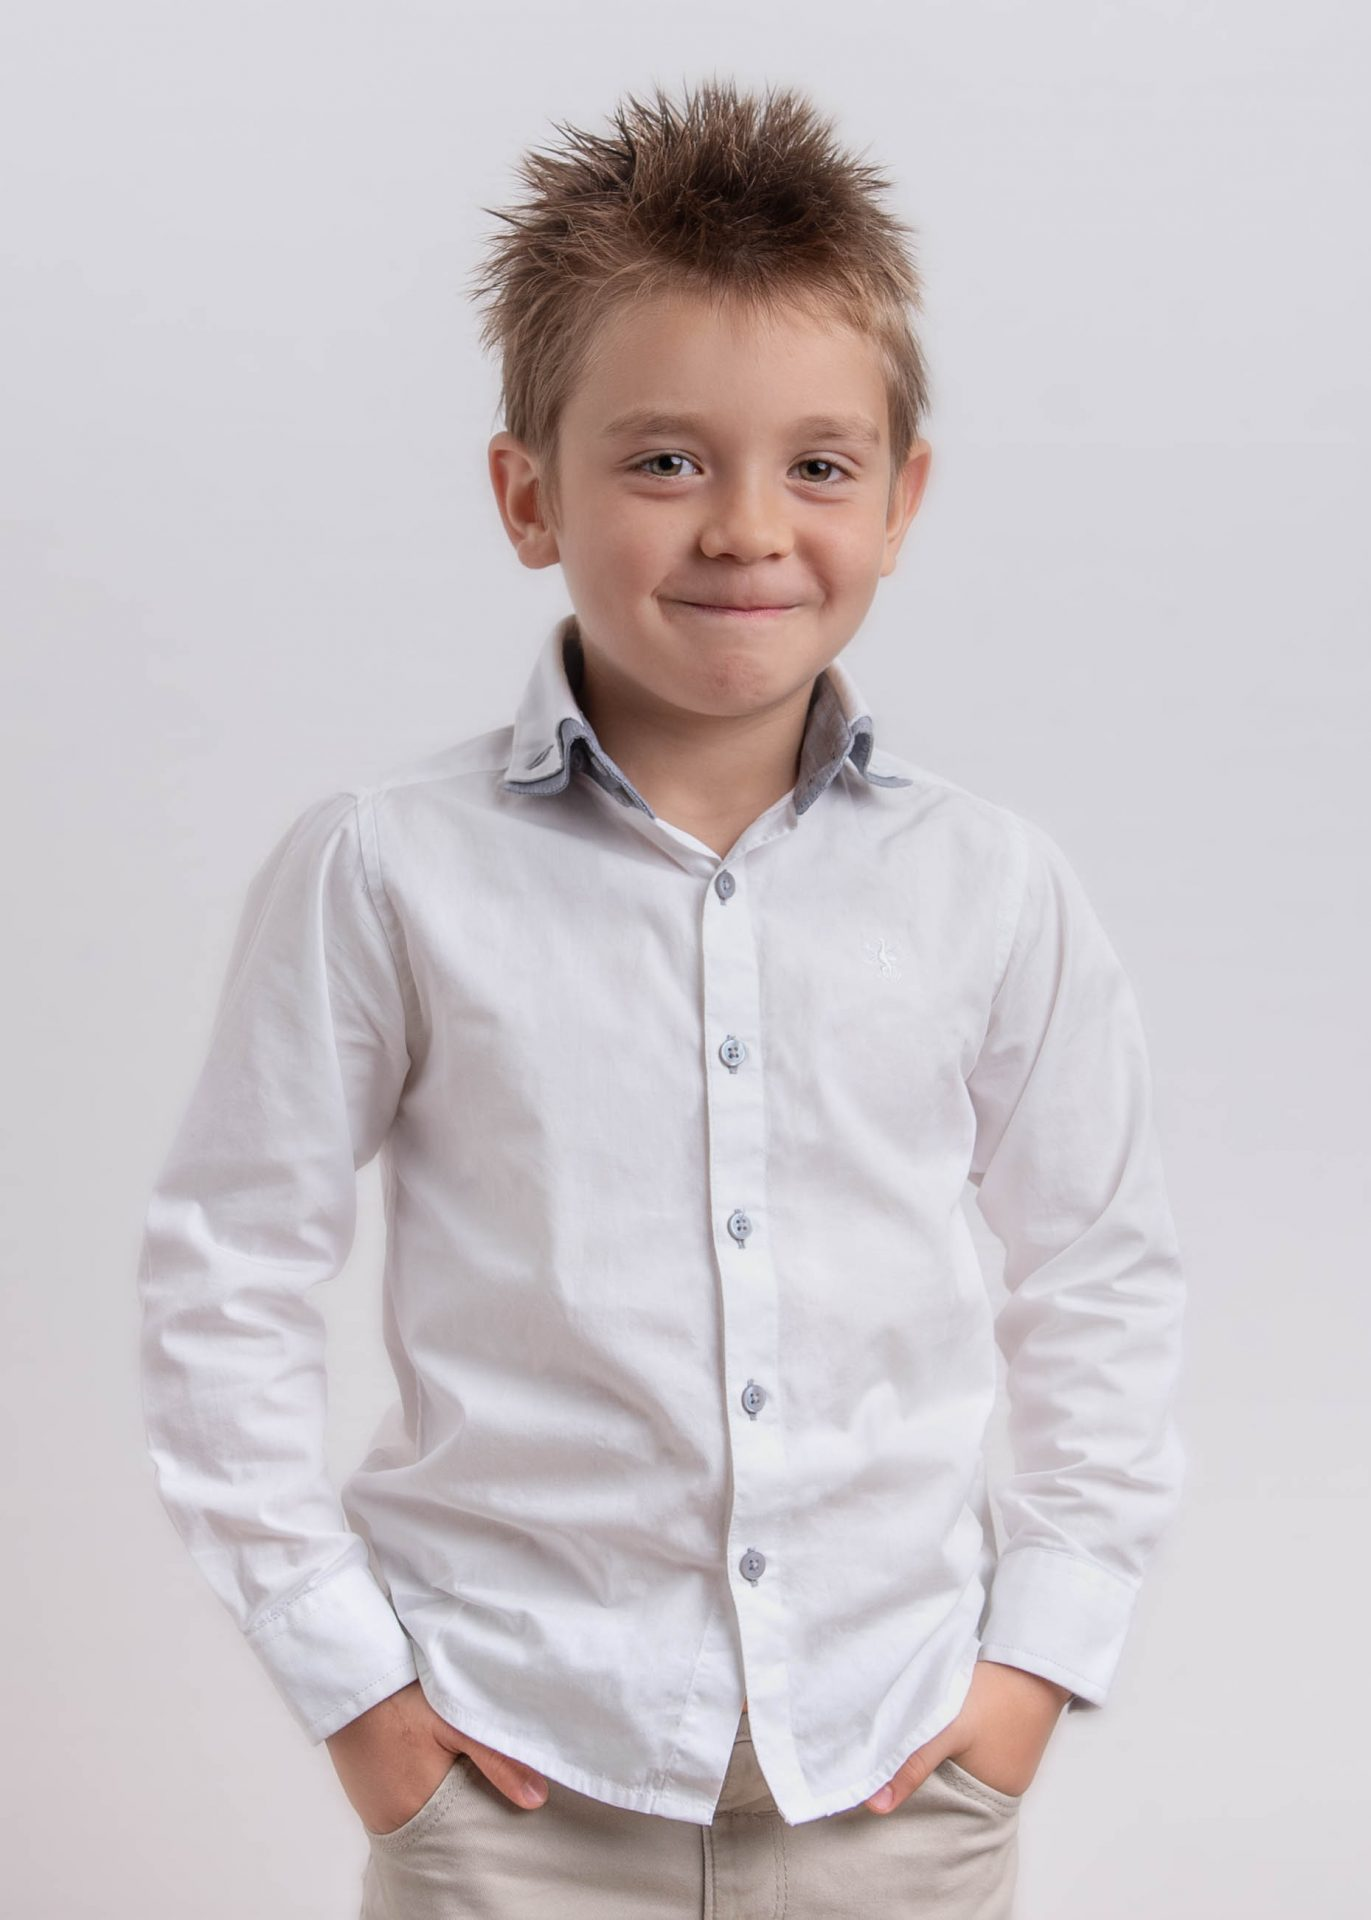 studio portrait of boy with spiky hair and white shirt against white background